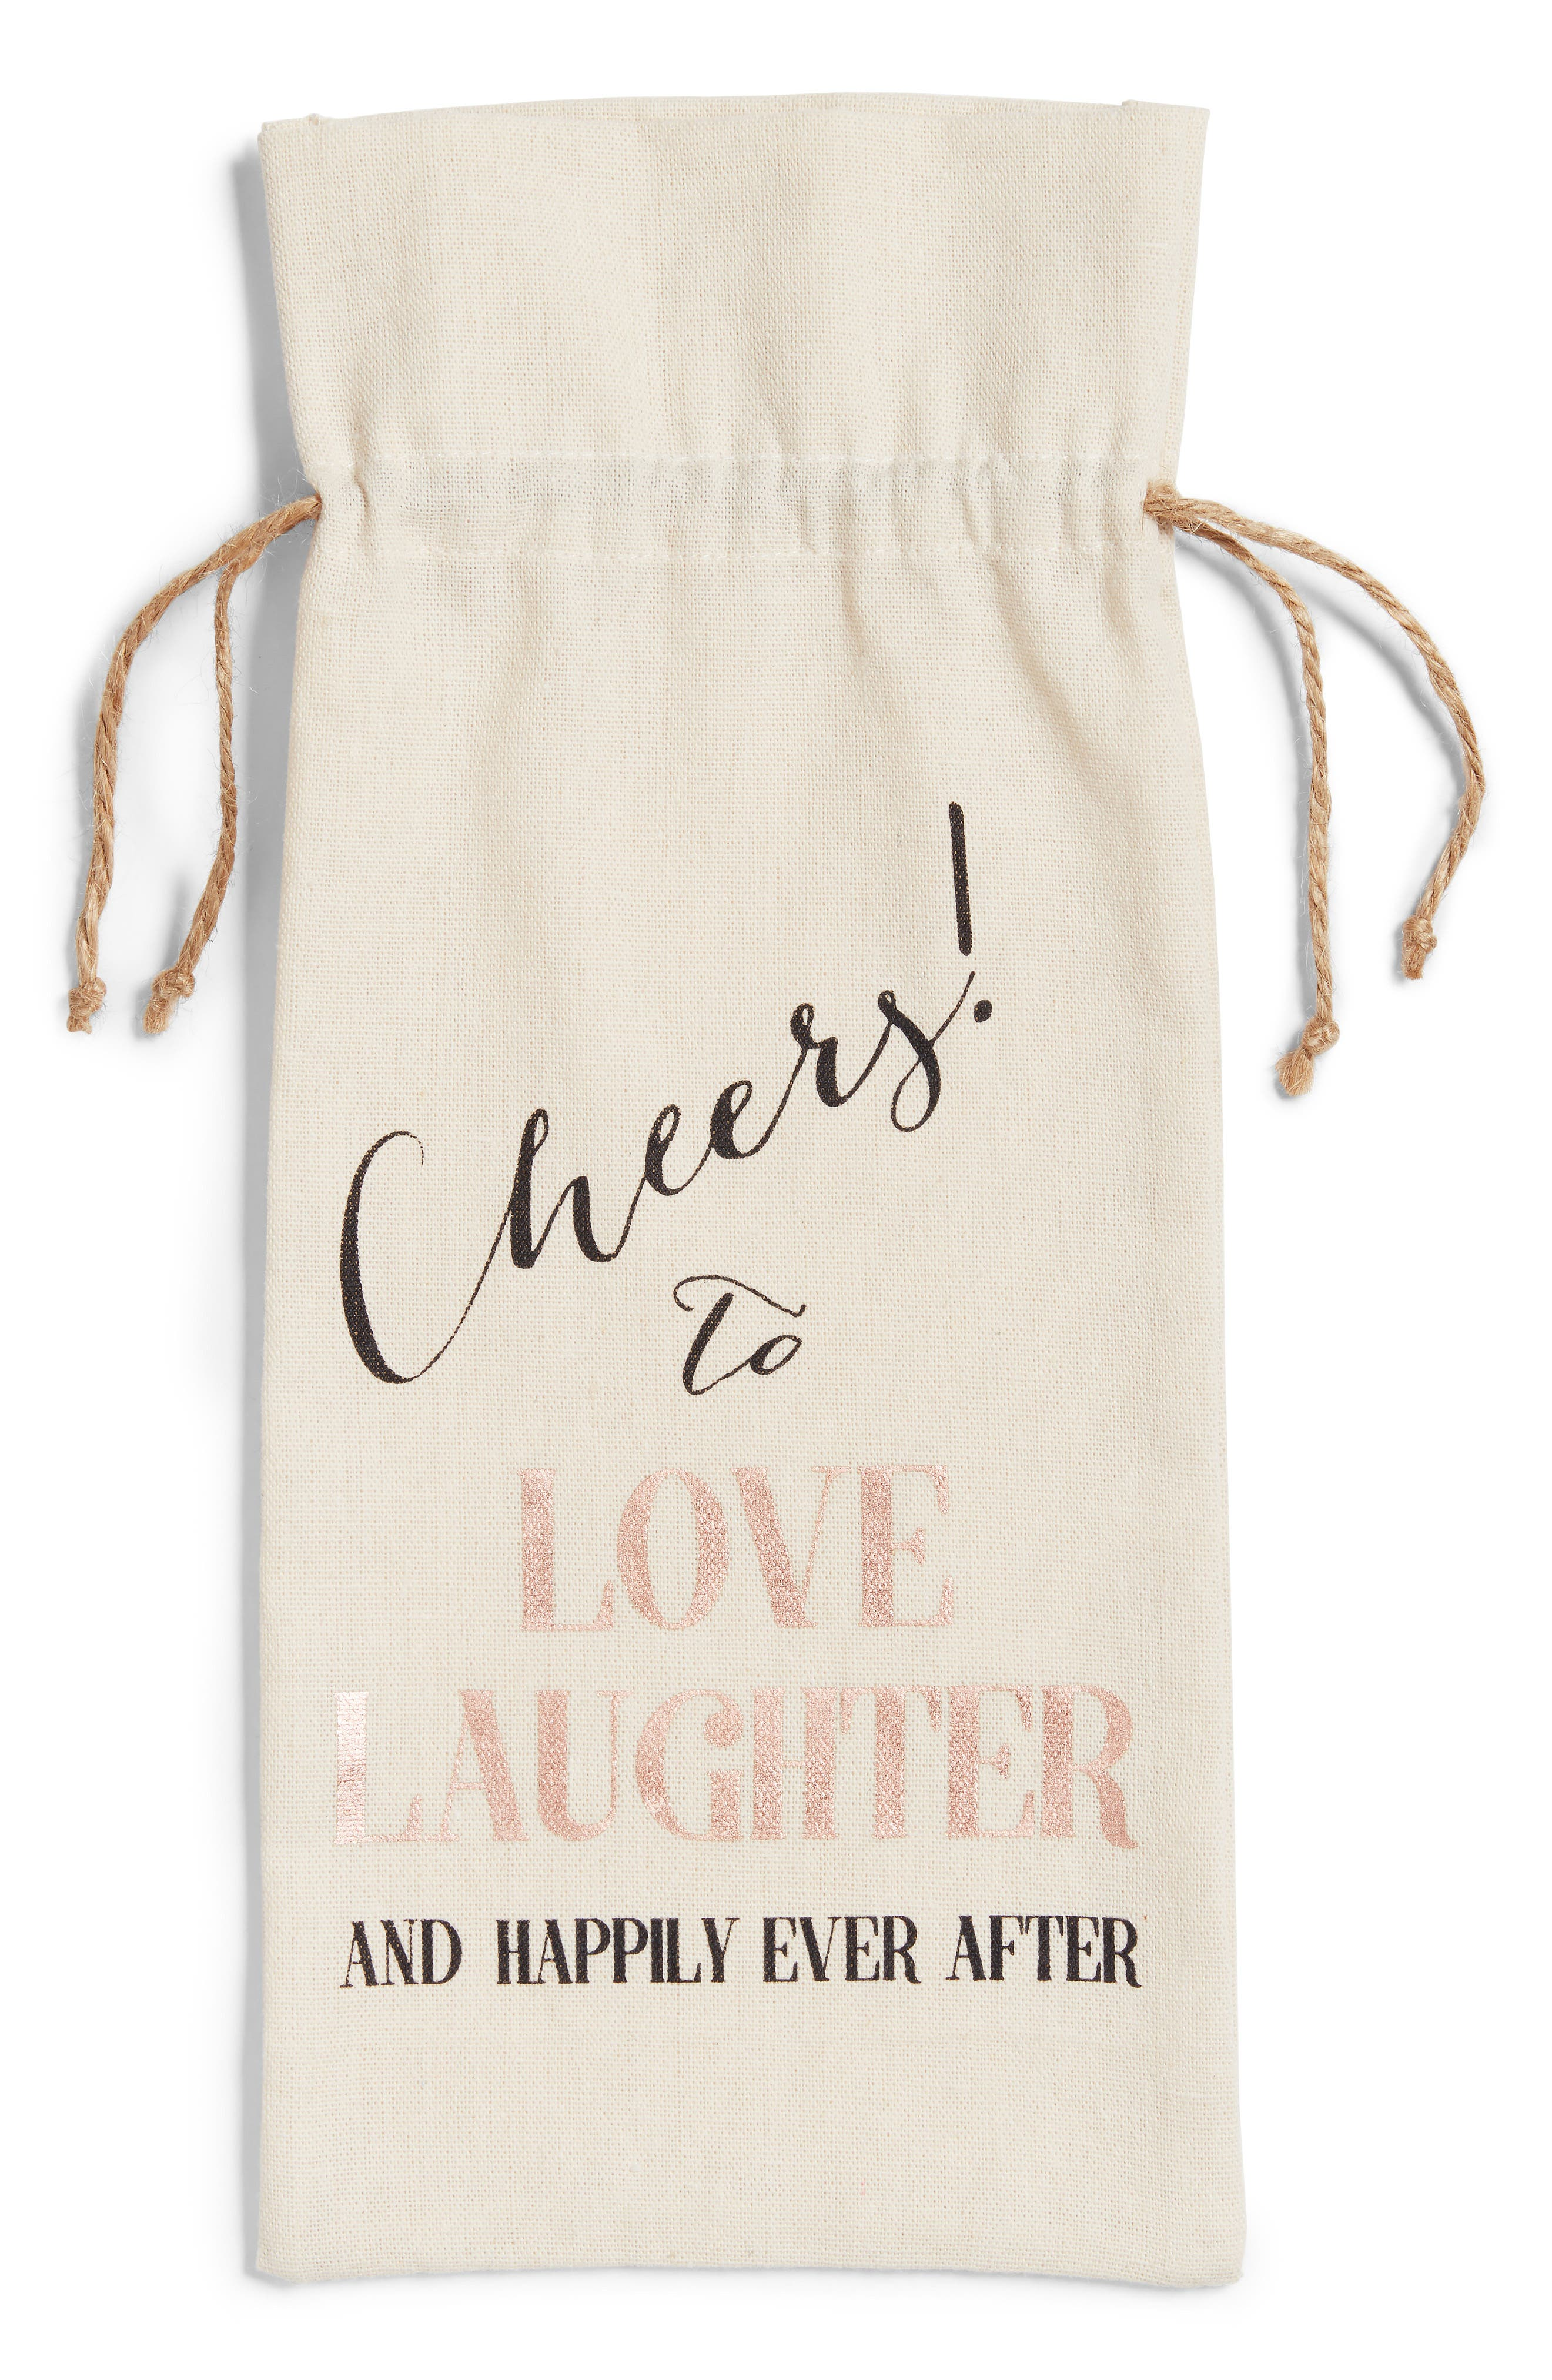 Cheers Wine Tote,                             Alternate thumbnail 2, color,                             900